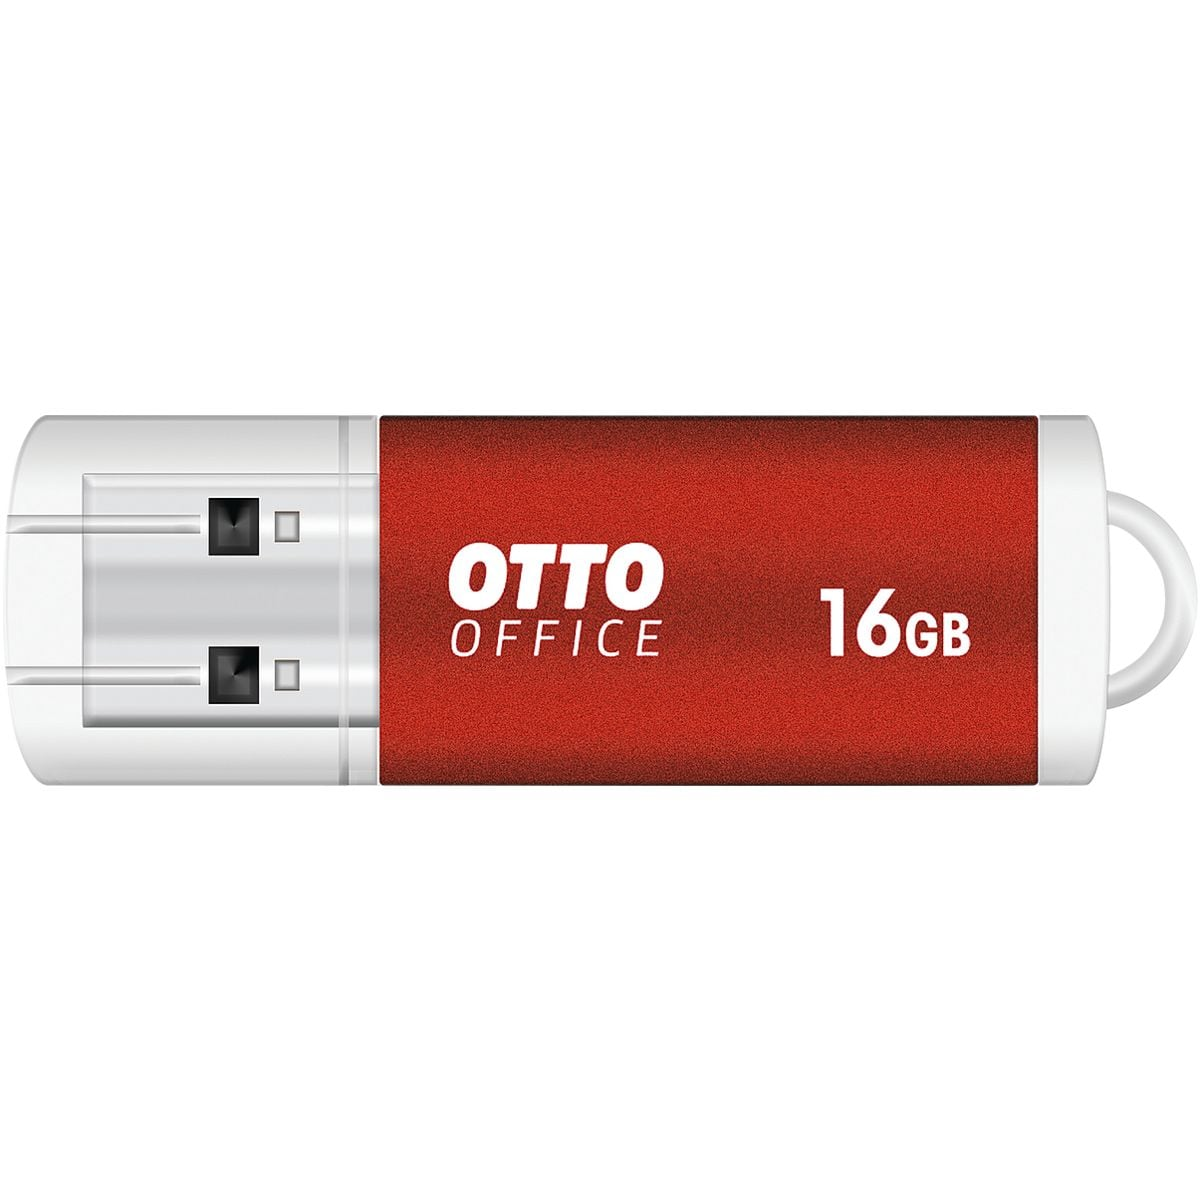 usb stick 16 gb otto office premium usb 2 0 bei otto office g nstig kaufen